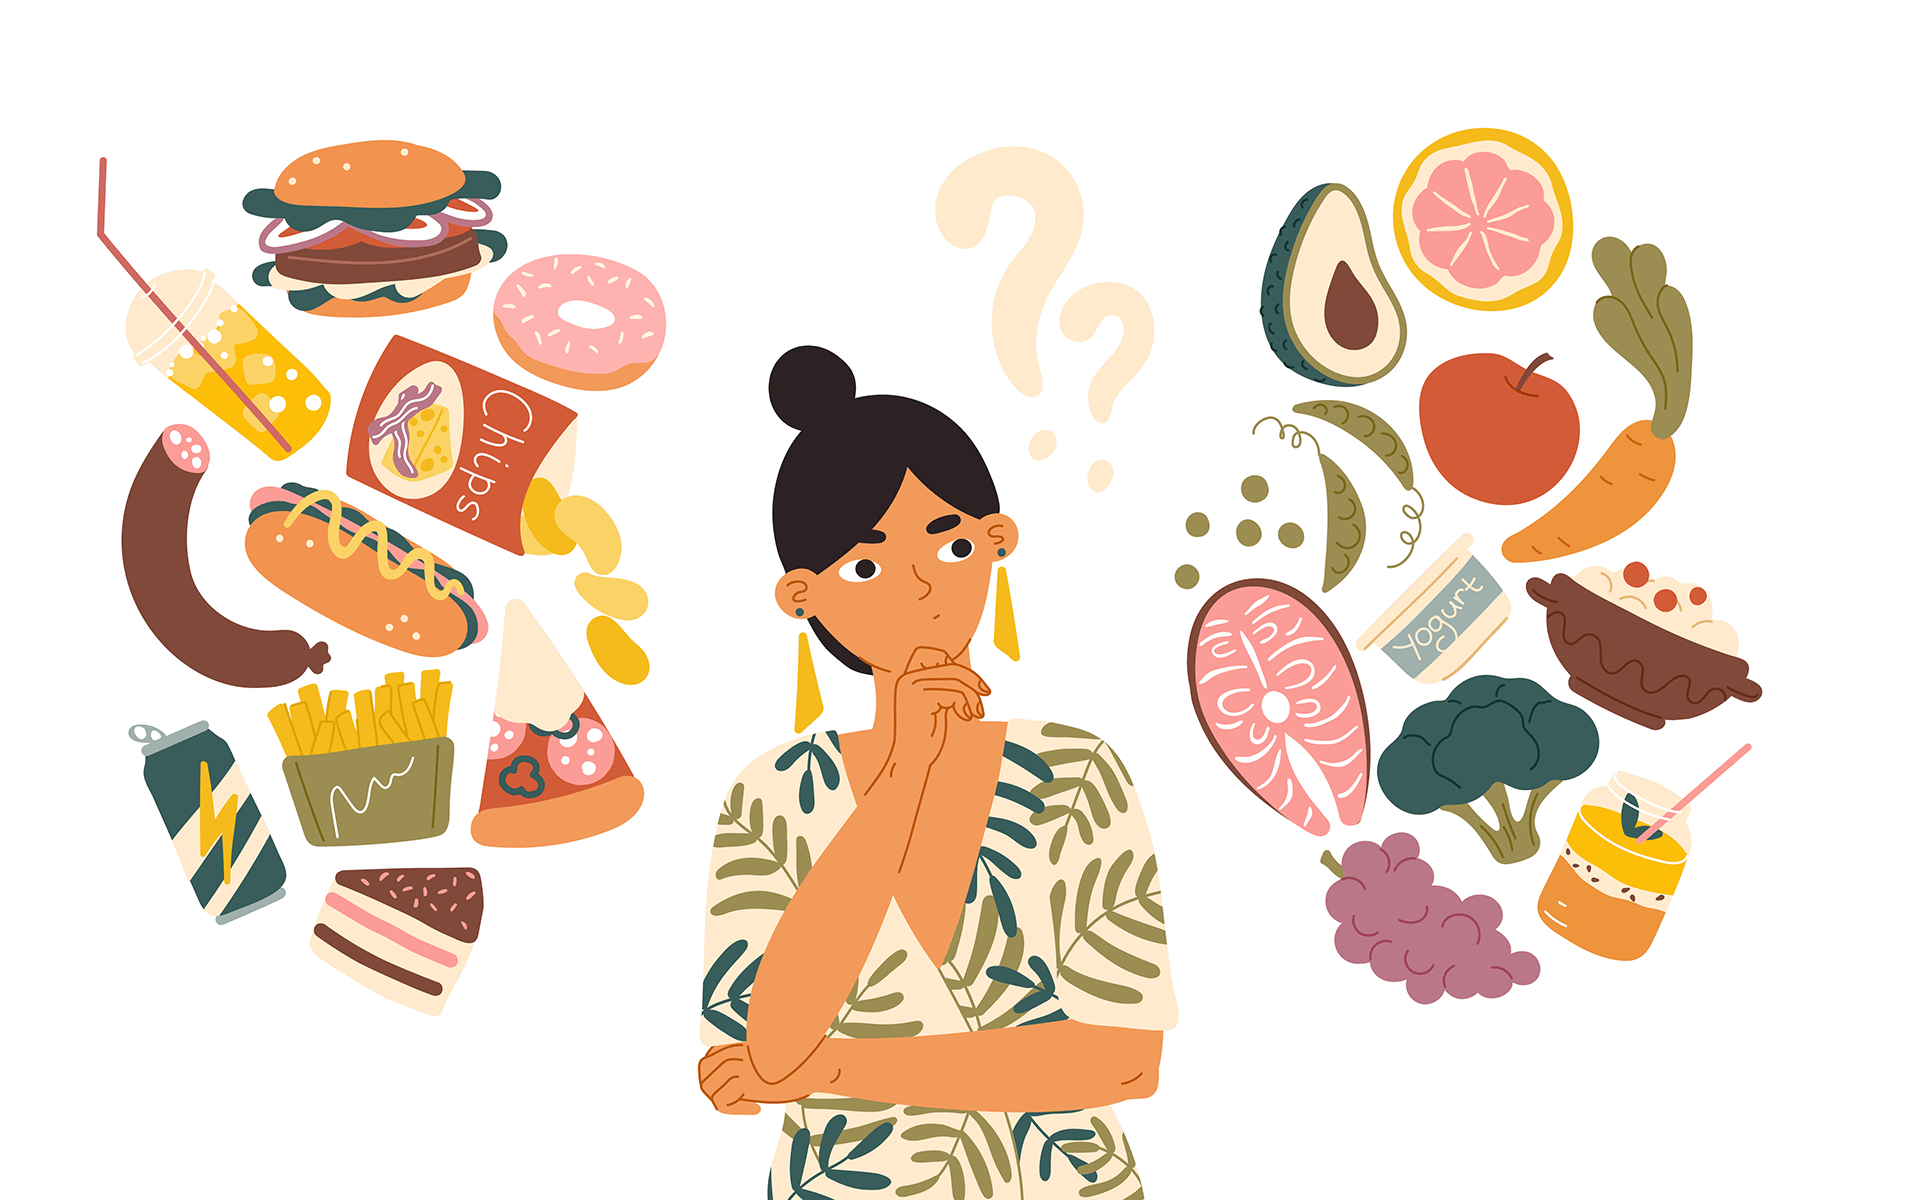 How to Break a Habit, According to Neuroscience—Illustration of a woman with black hair and a white and green shirt on thinking. On one side of her are floating images of junk food, and on the other side there are floating images of healthy food.